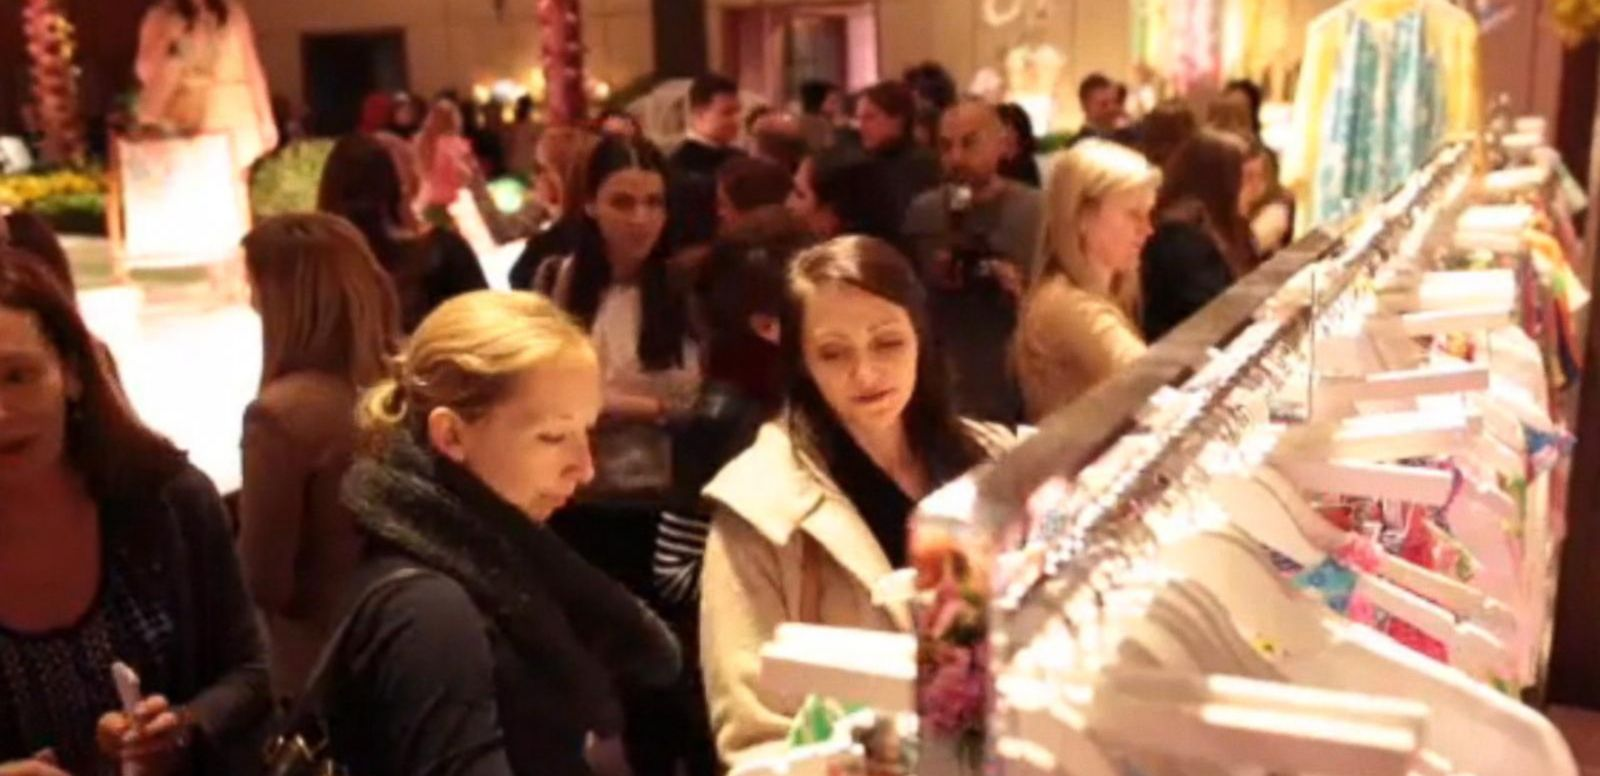 VIDEO: Customers Flock to Target for Launch of Lilly Pulitzer Line